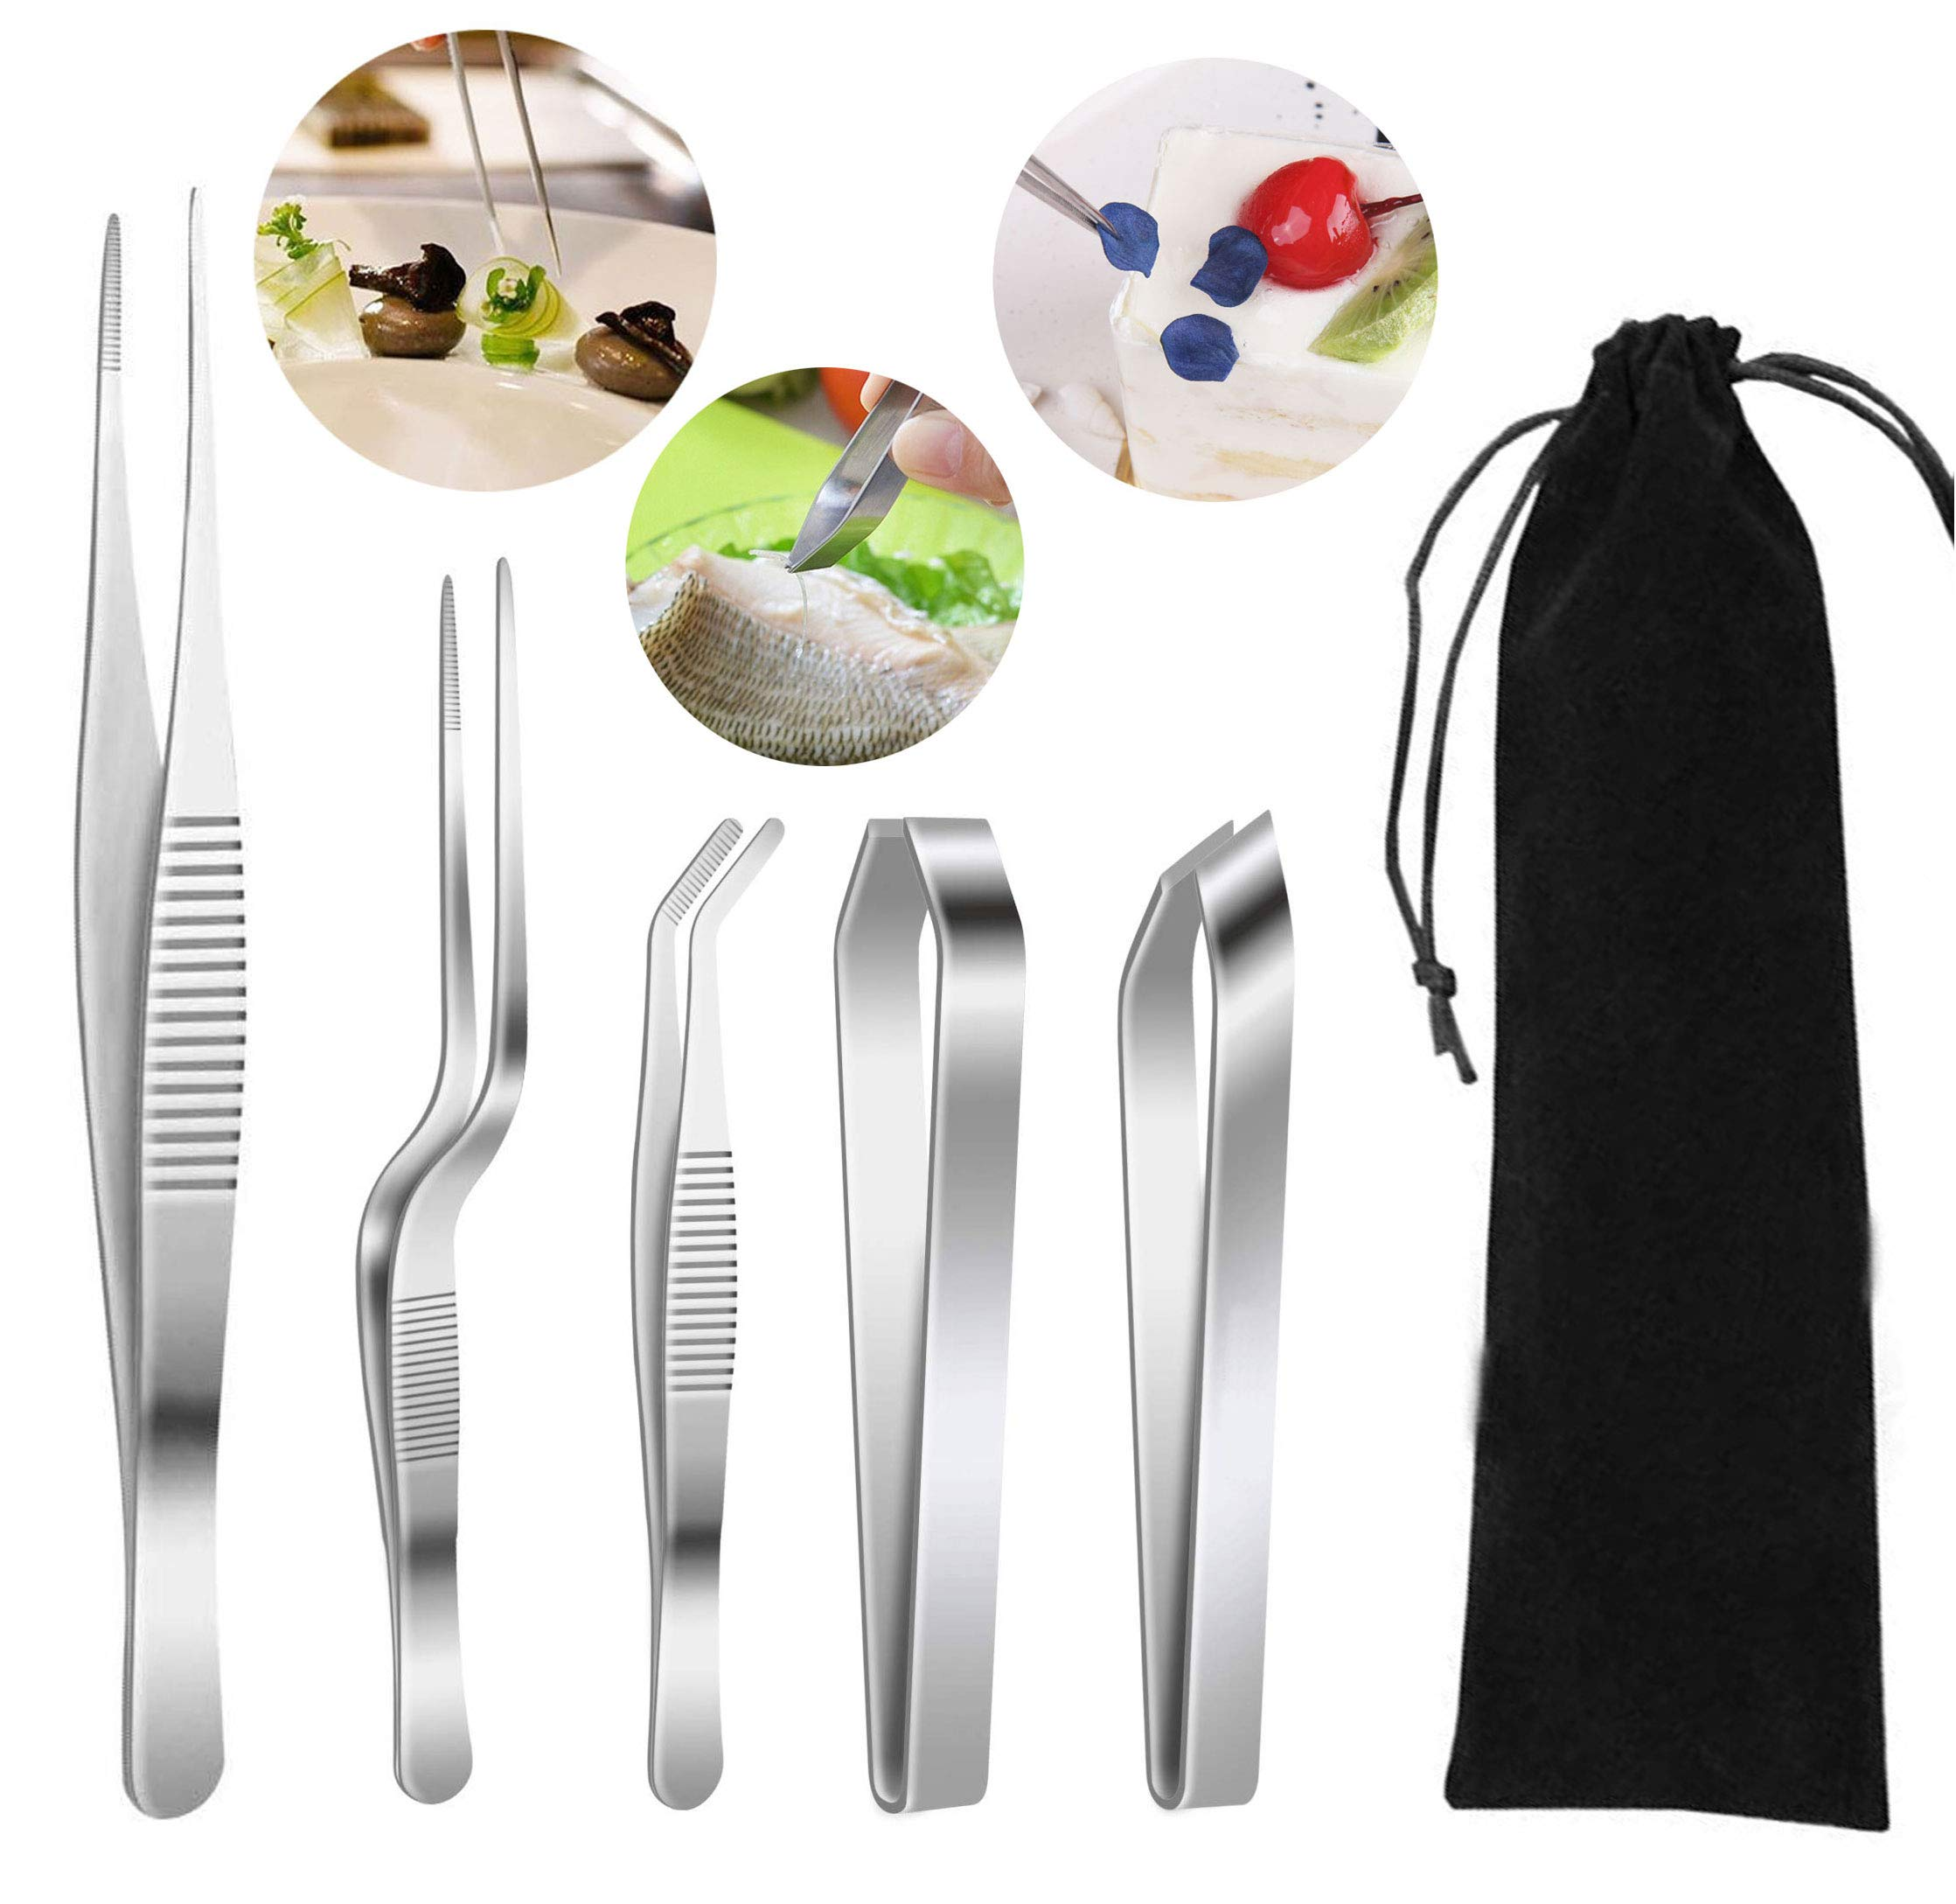 5 Pieces Stainless Steel Cooking Tweezers Precision Tongs, Fish Bone Tweezers for Decorating and Plating Tool(Includes: Storage Bag)